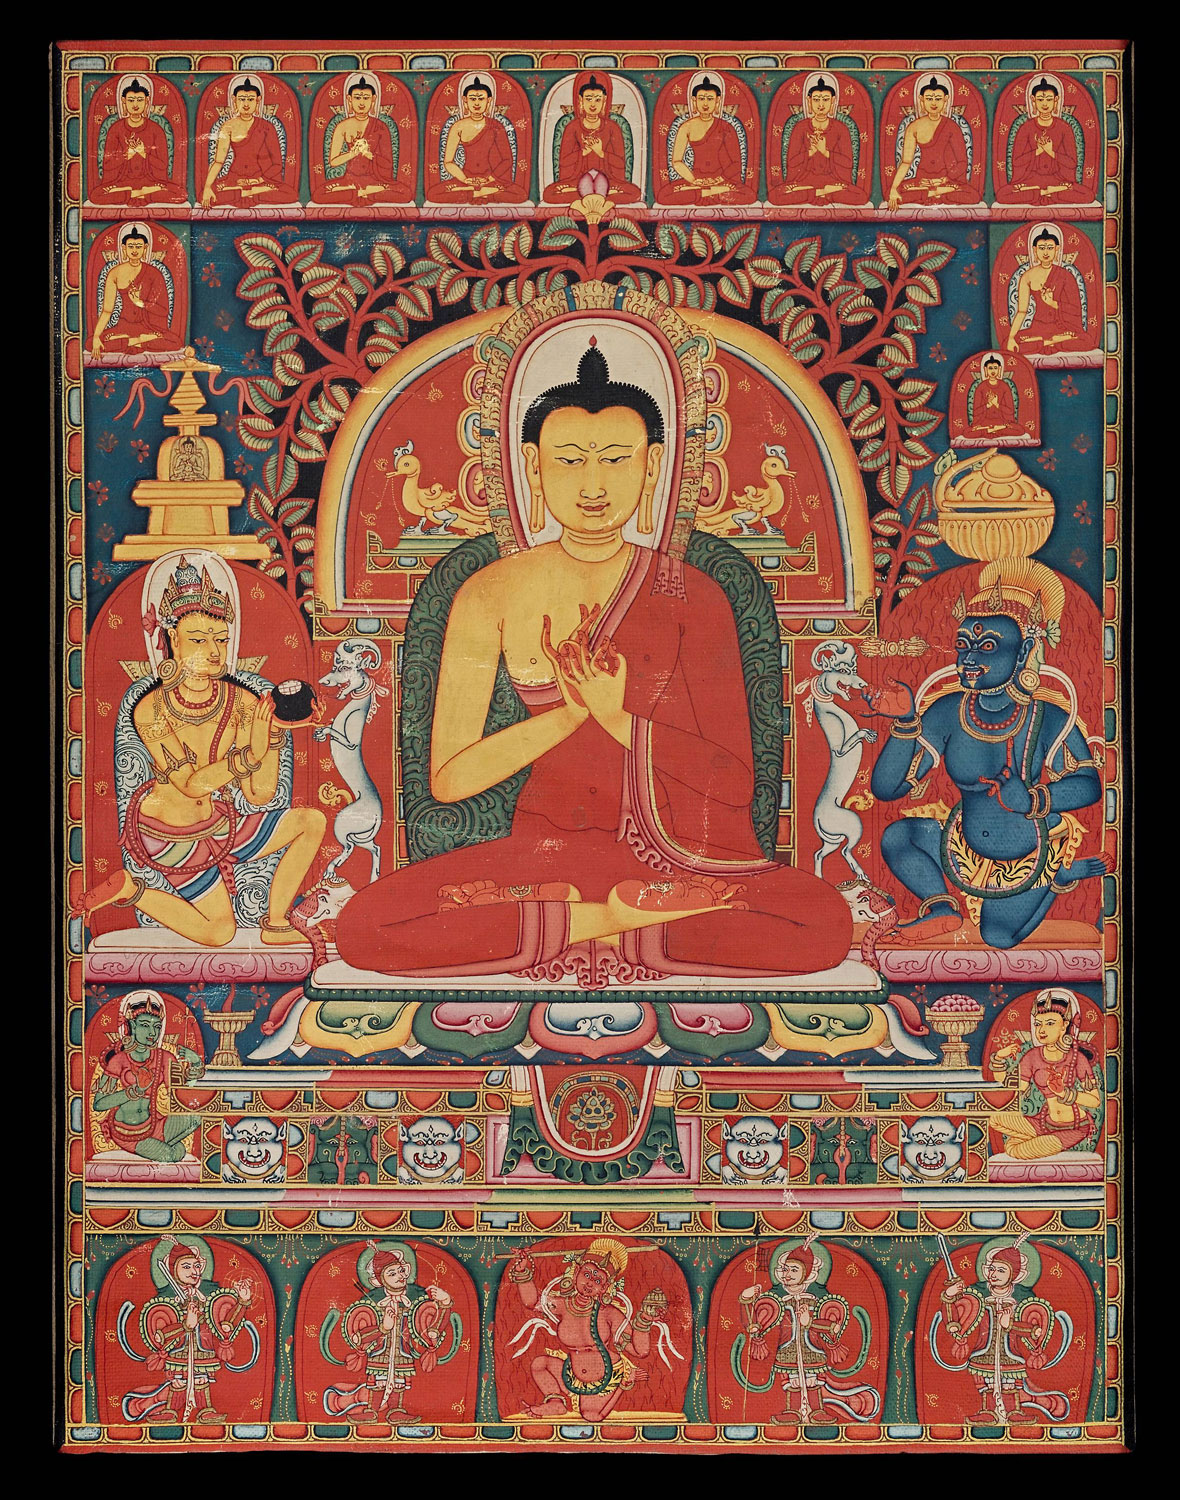 early buddhist art observed in india A comprehensive analysis of the earliest buddhist art of china, bactria, and the southern silk road in central asia from ca 1st - 4th century ad, elucidating the inter-relationships, history, religious elements, sources, dating and chronology.